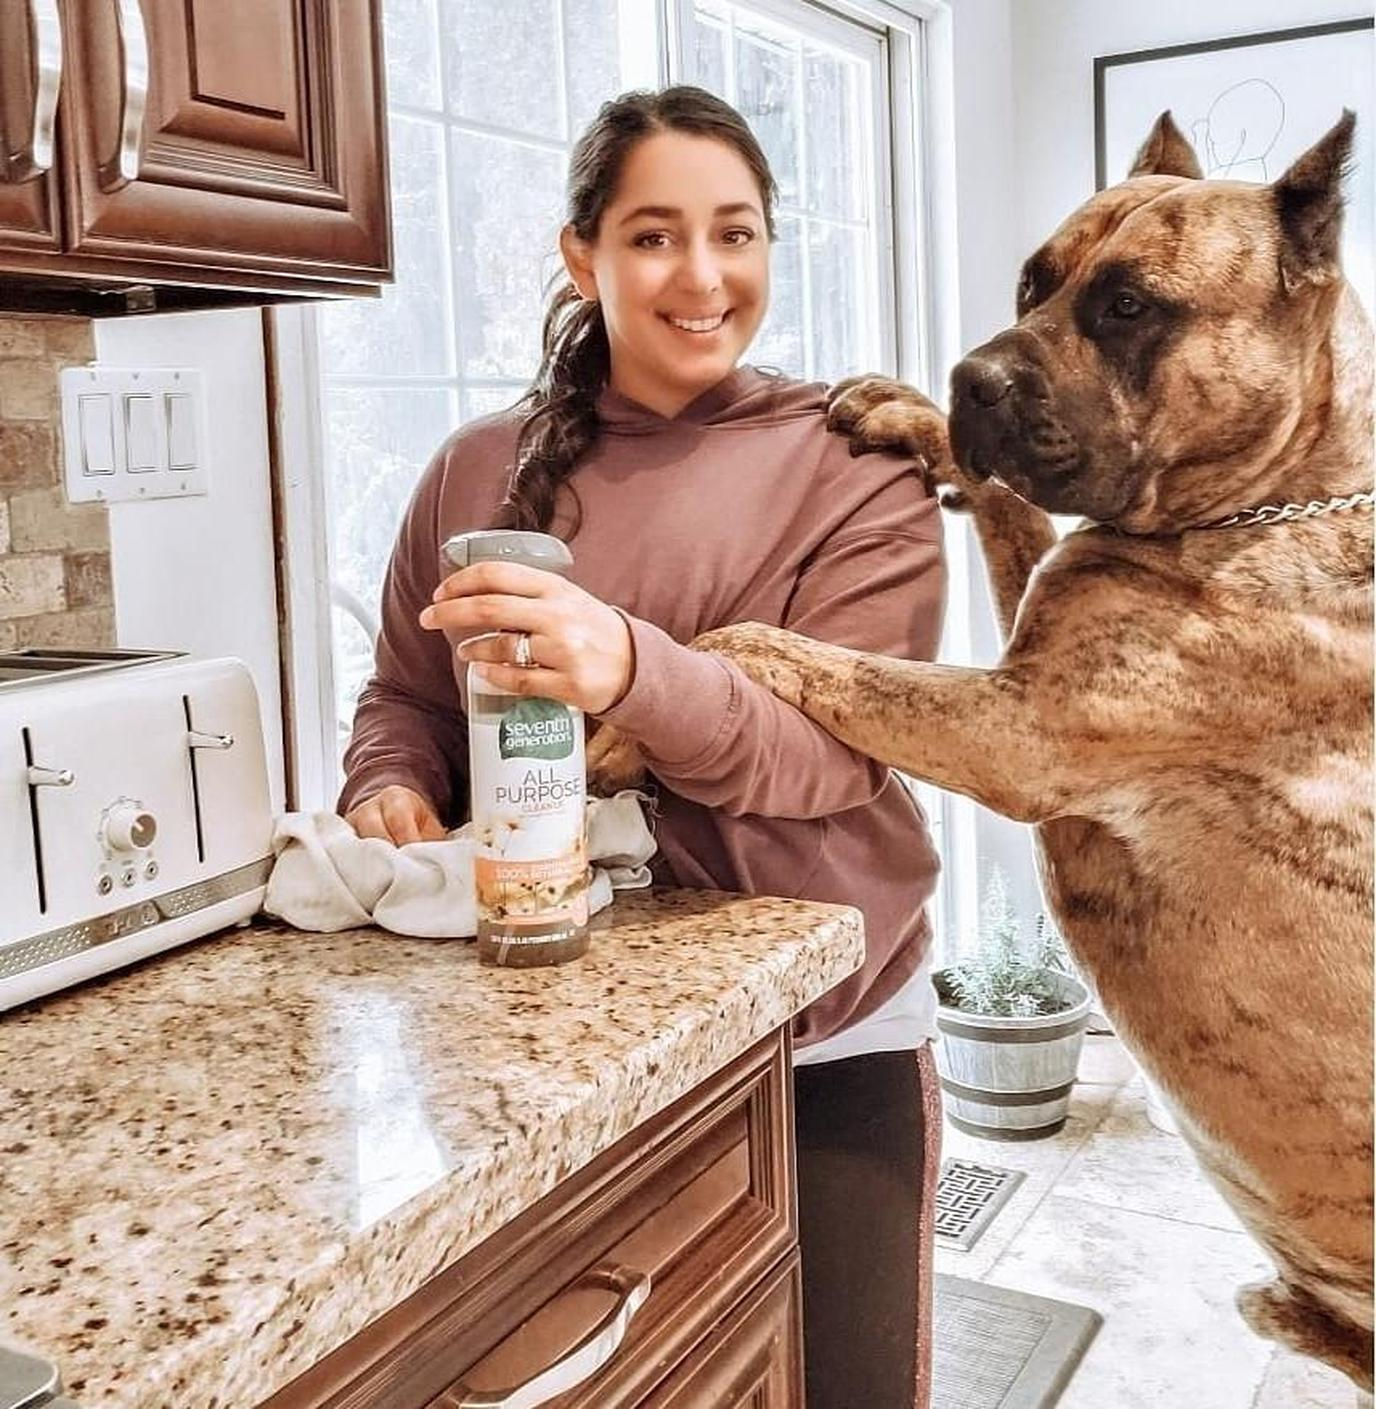 Seventh Gen makes non toxic cleaning products for pets.